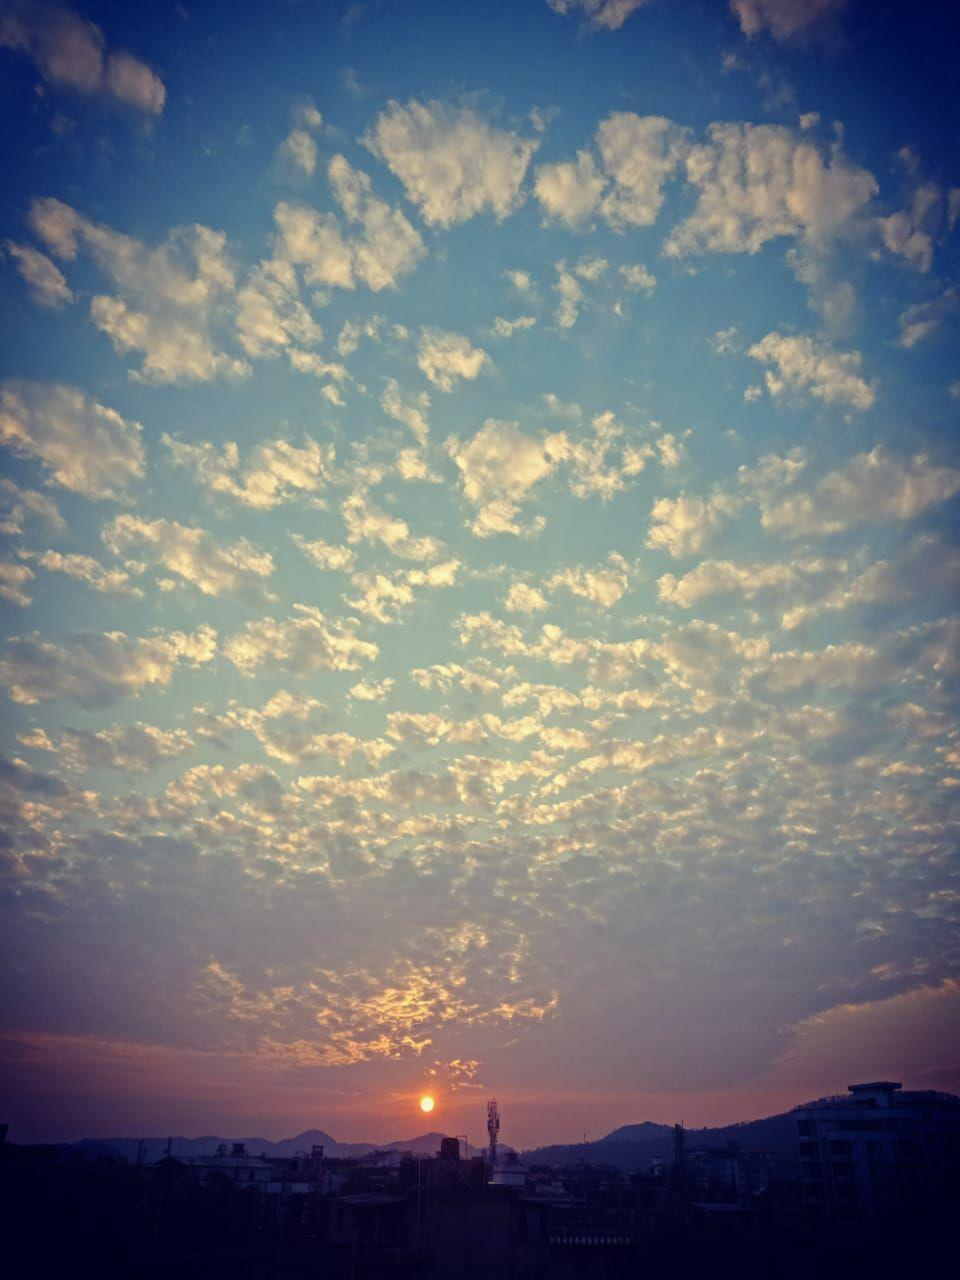 This photograph is a striking long shot of the early morning sky taken from the balcony in Mayuri's home. A major part of this vertical oriented photograph consists of silver-white clouds flecking a blue sky like a carpet right up to the horizon, where a rising sun has painted the sky in hues of orange and pink. A few buildings and trees can be seen in the near distance, somewhat still in the dark, with a number of hills rising behind them in the far distance. The entire scene is one of morning calm symbolizing peace and positivity. Photo credit: Mayuri